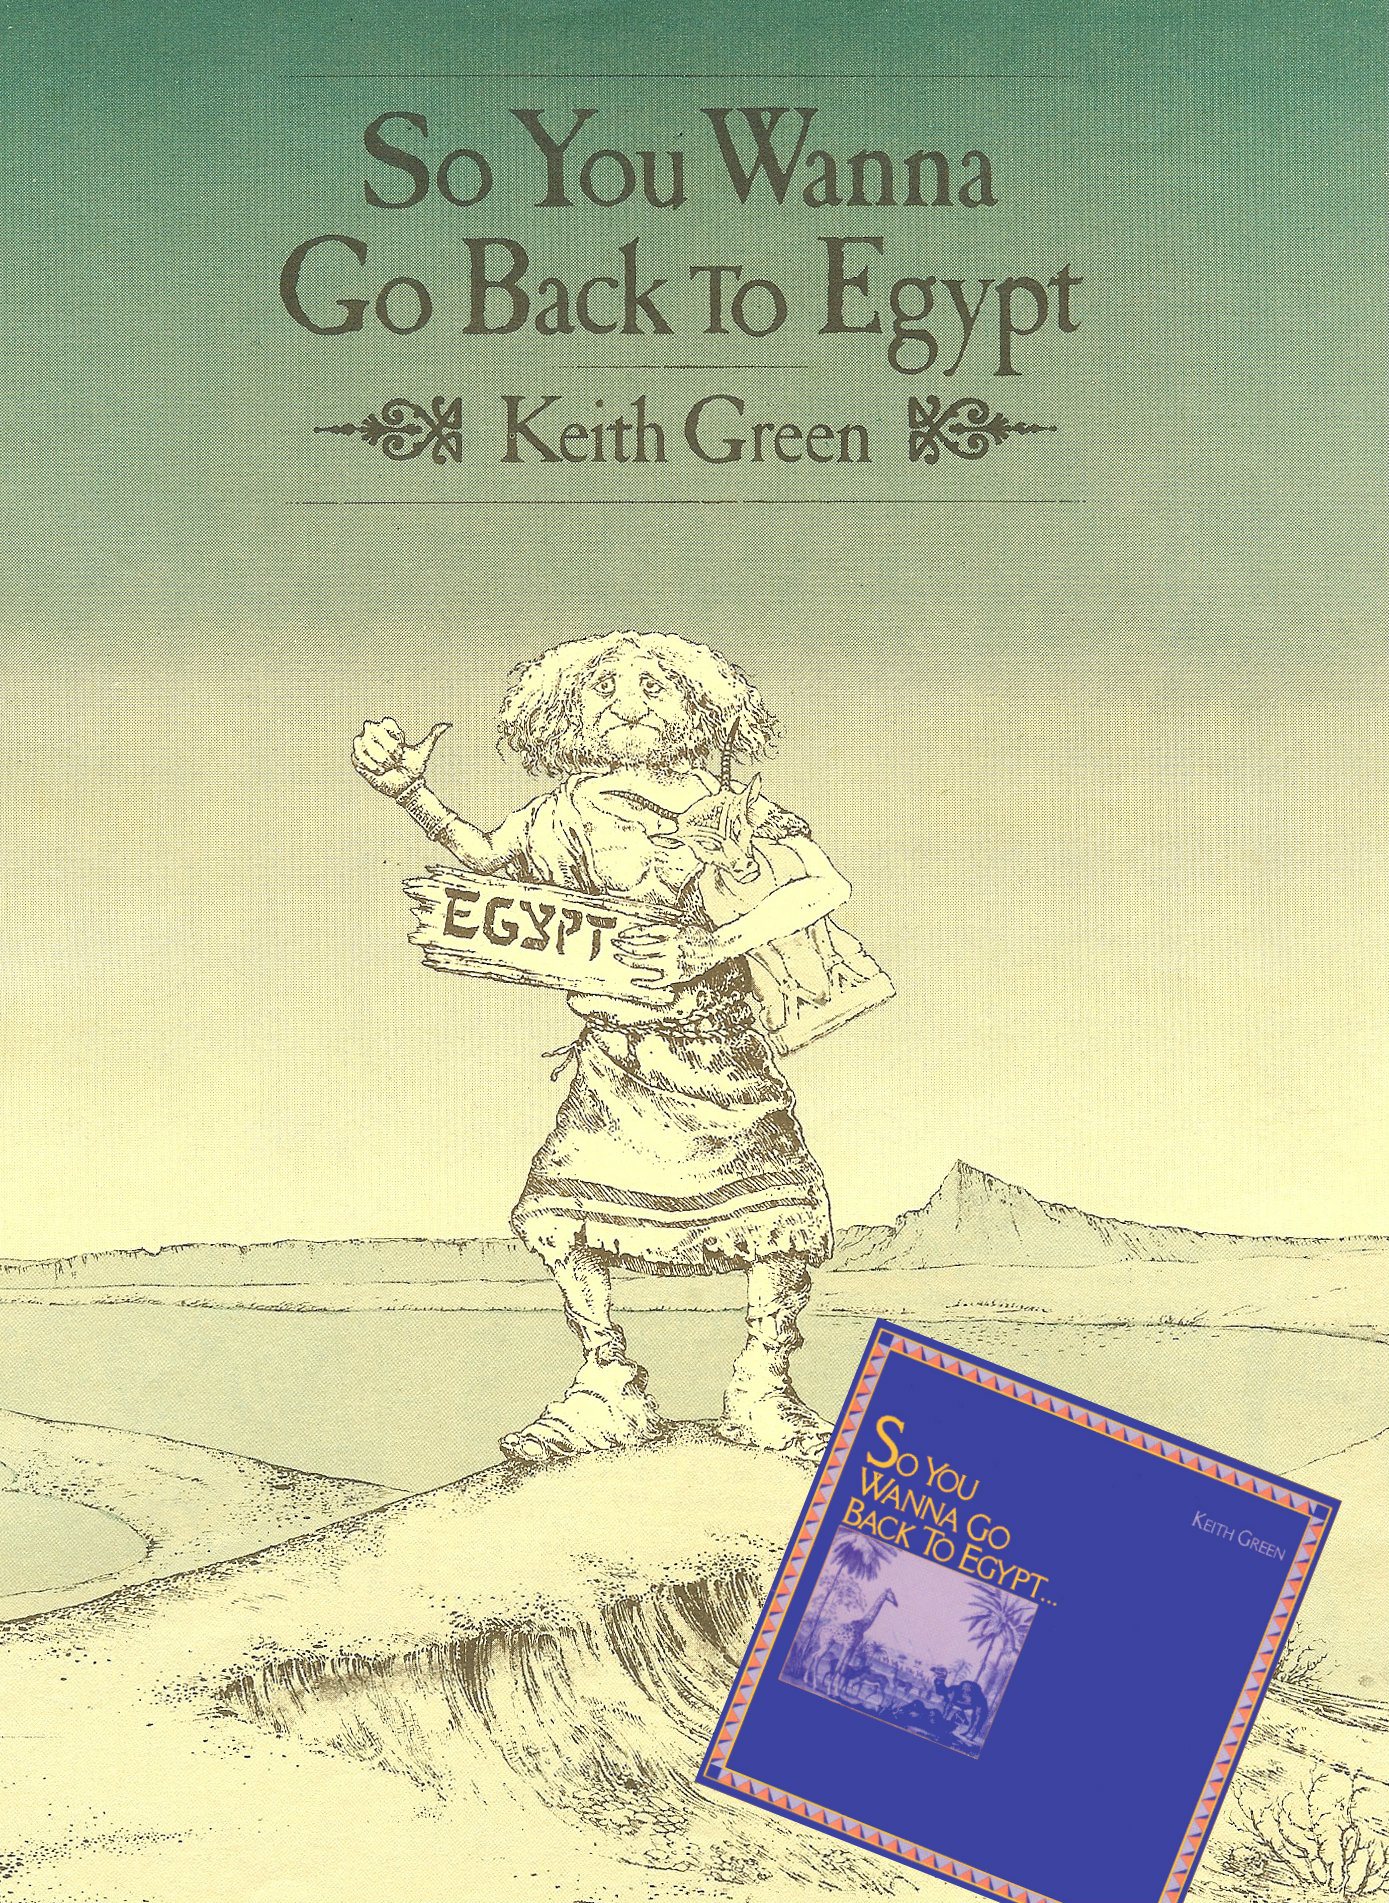 Back to Egypt with album art